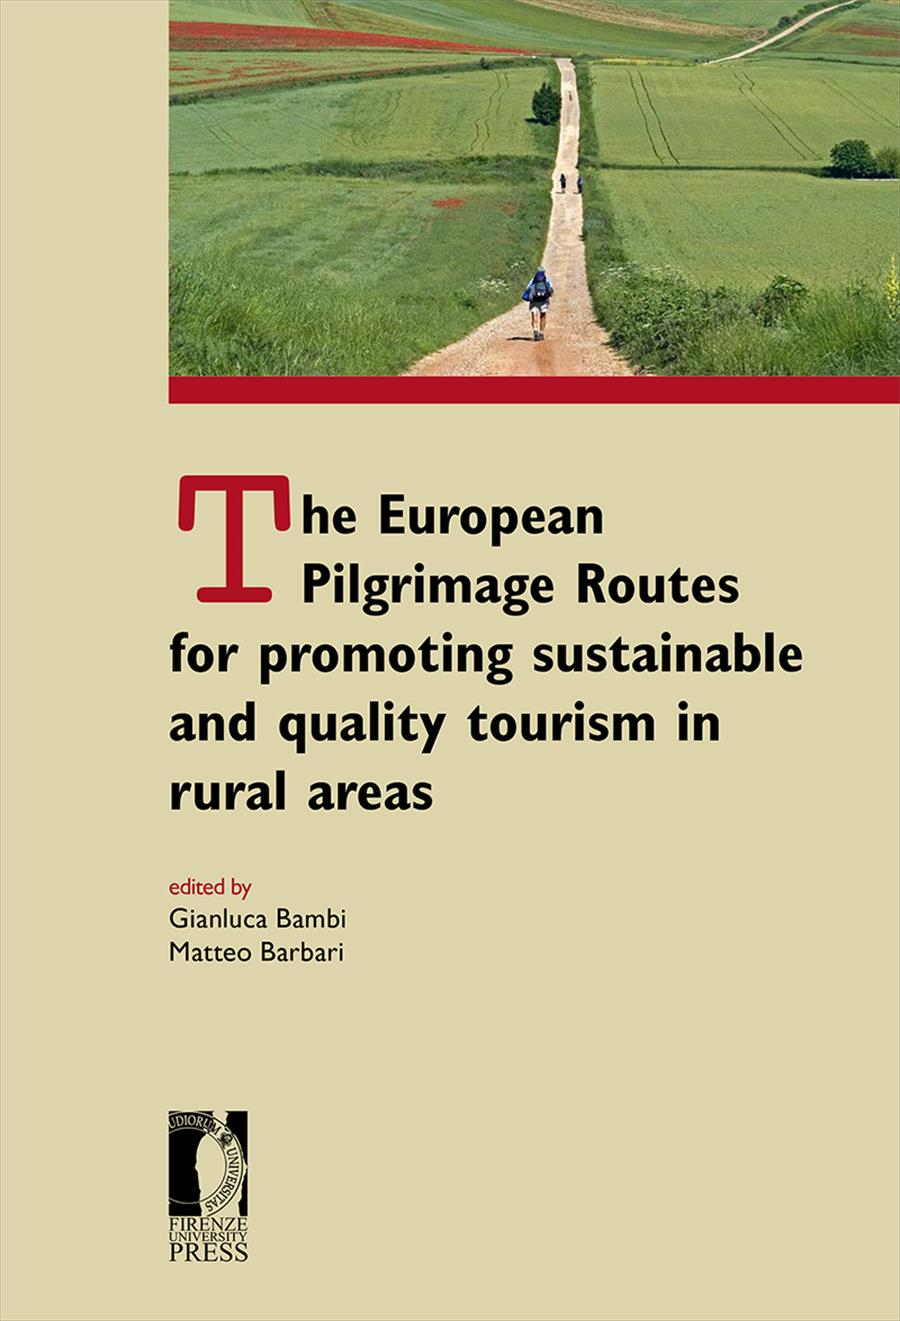 The European Pilgrimage Routes for promoting sustainable and quality tourism in rural areas